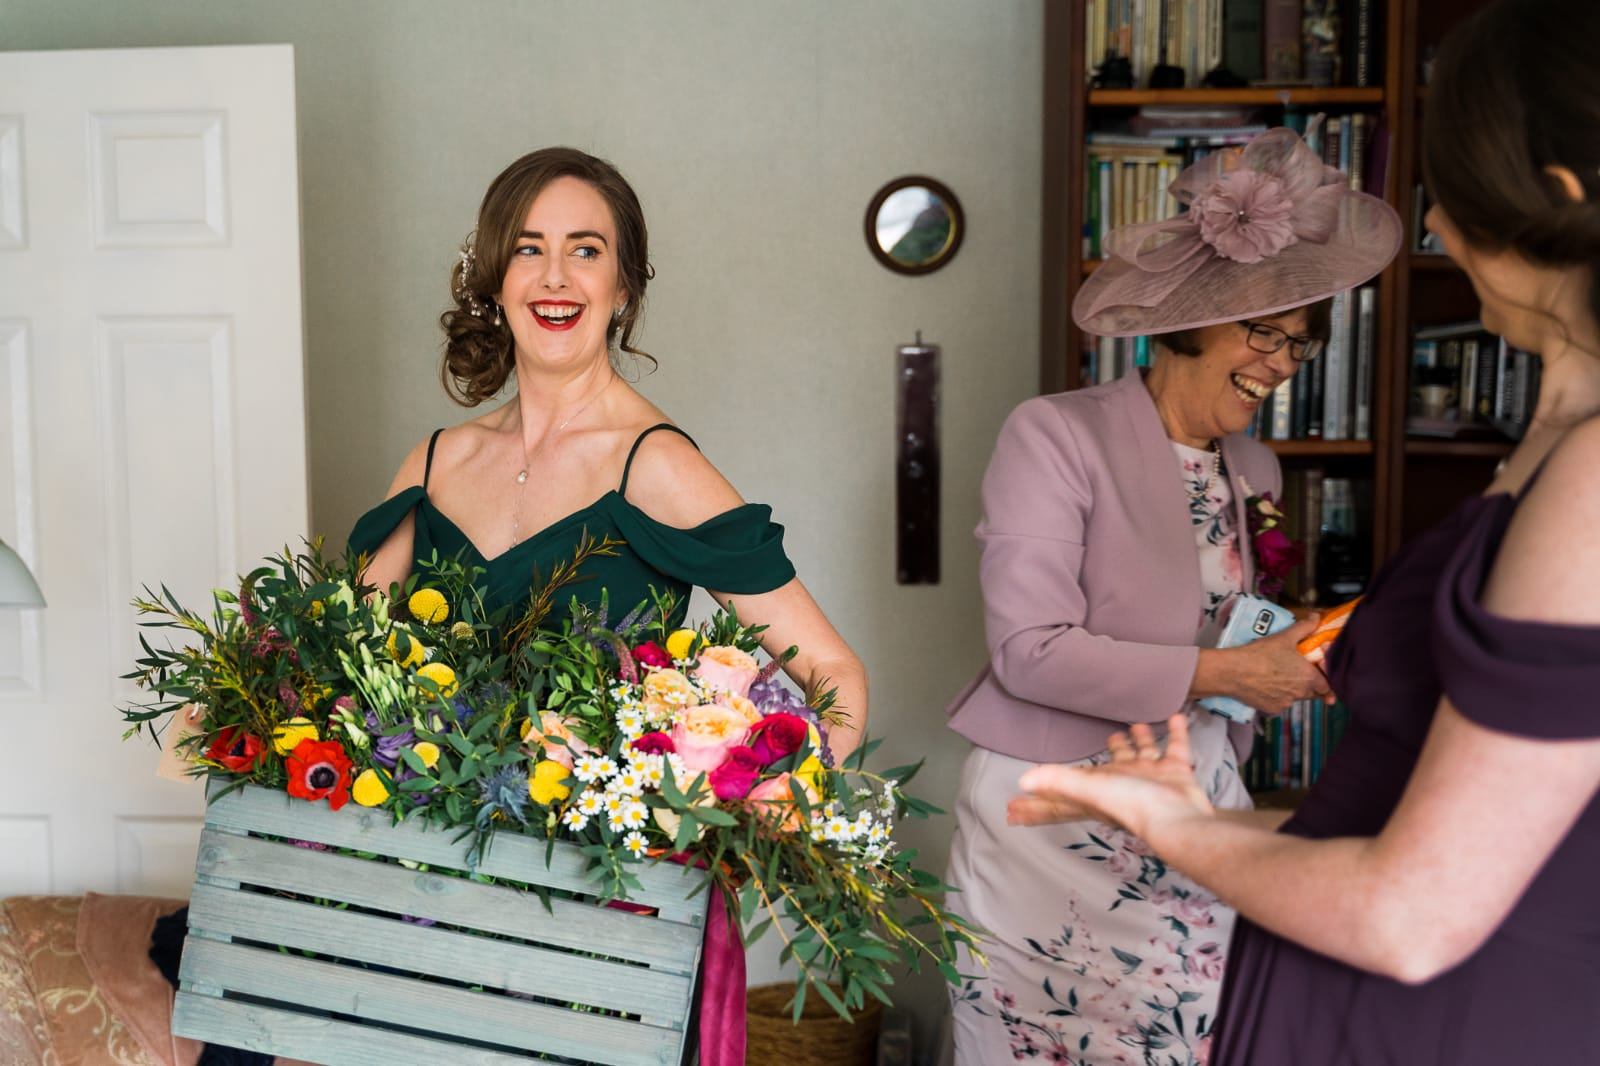 Happy bridesmaid holding a crate full of flowers